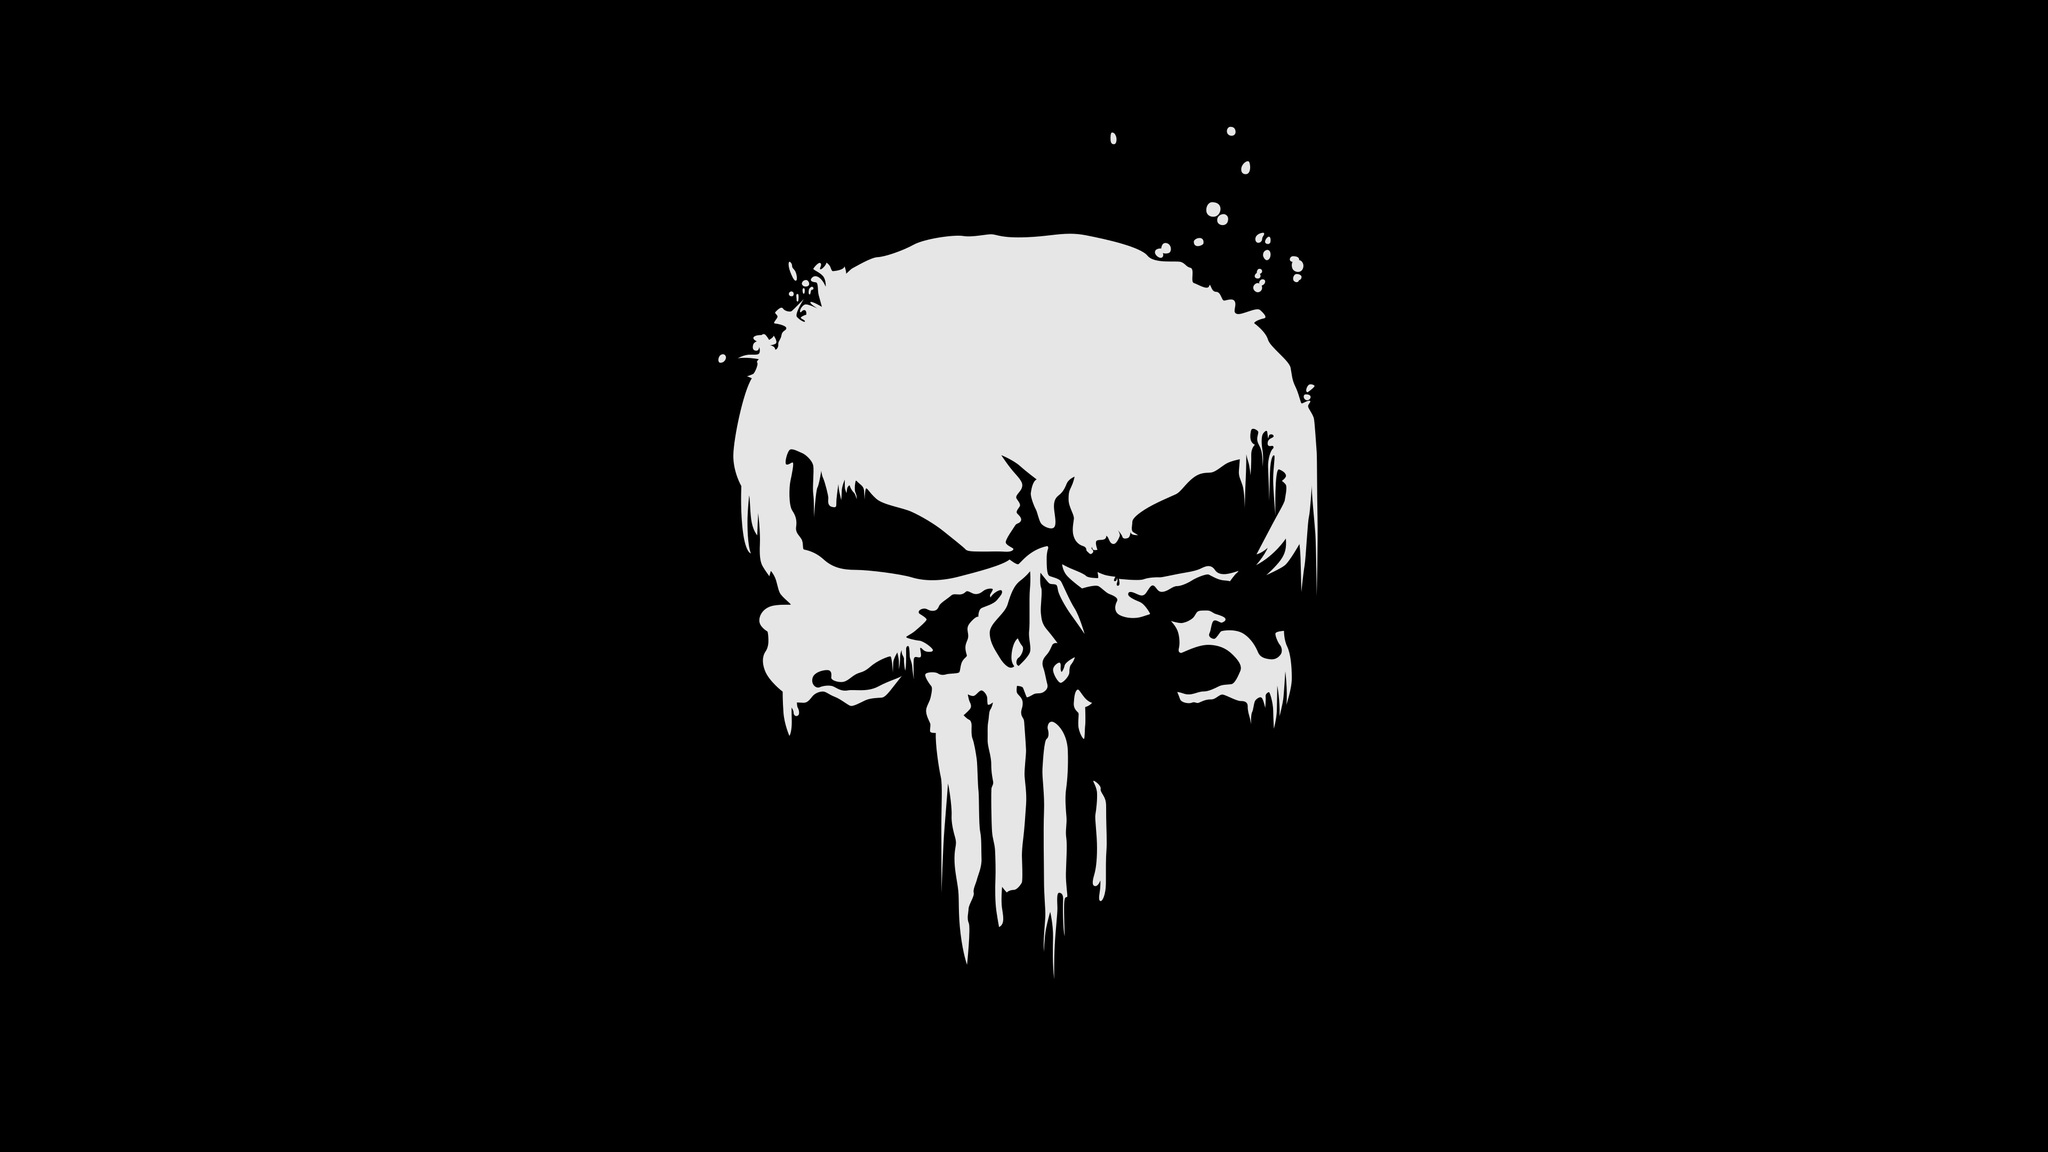 2048x1152 the punisher logo 4k 2048x1152 resolution hd 4k wallpapers